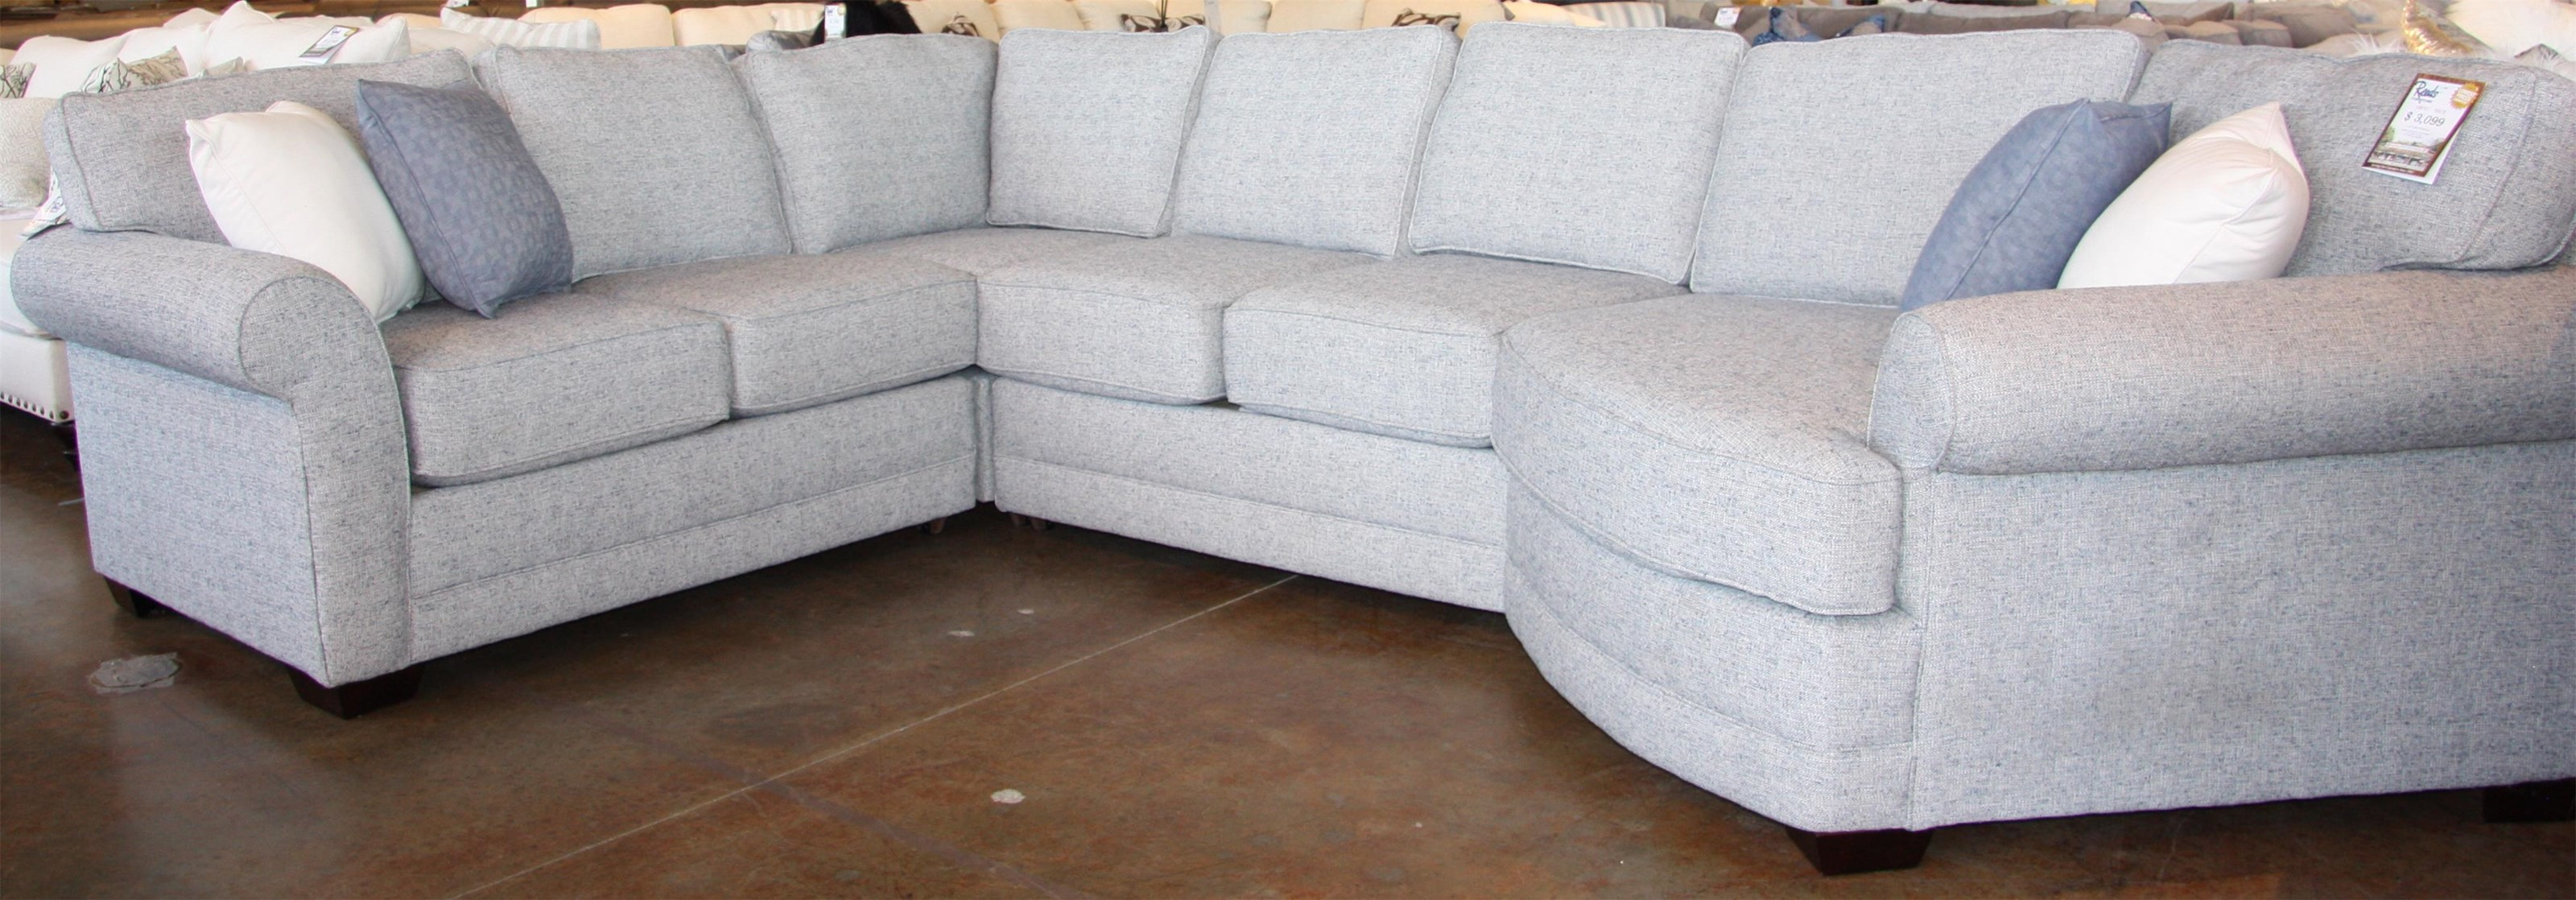 4 PC Sectional with Cuddler